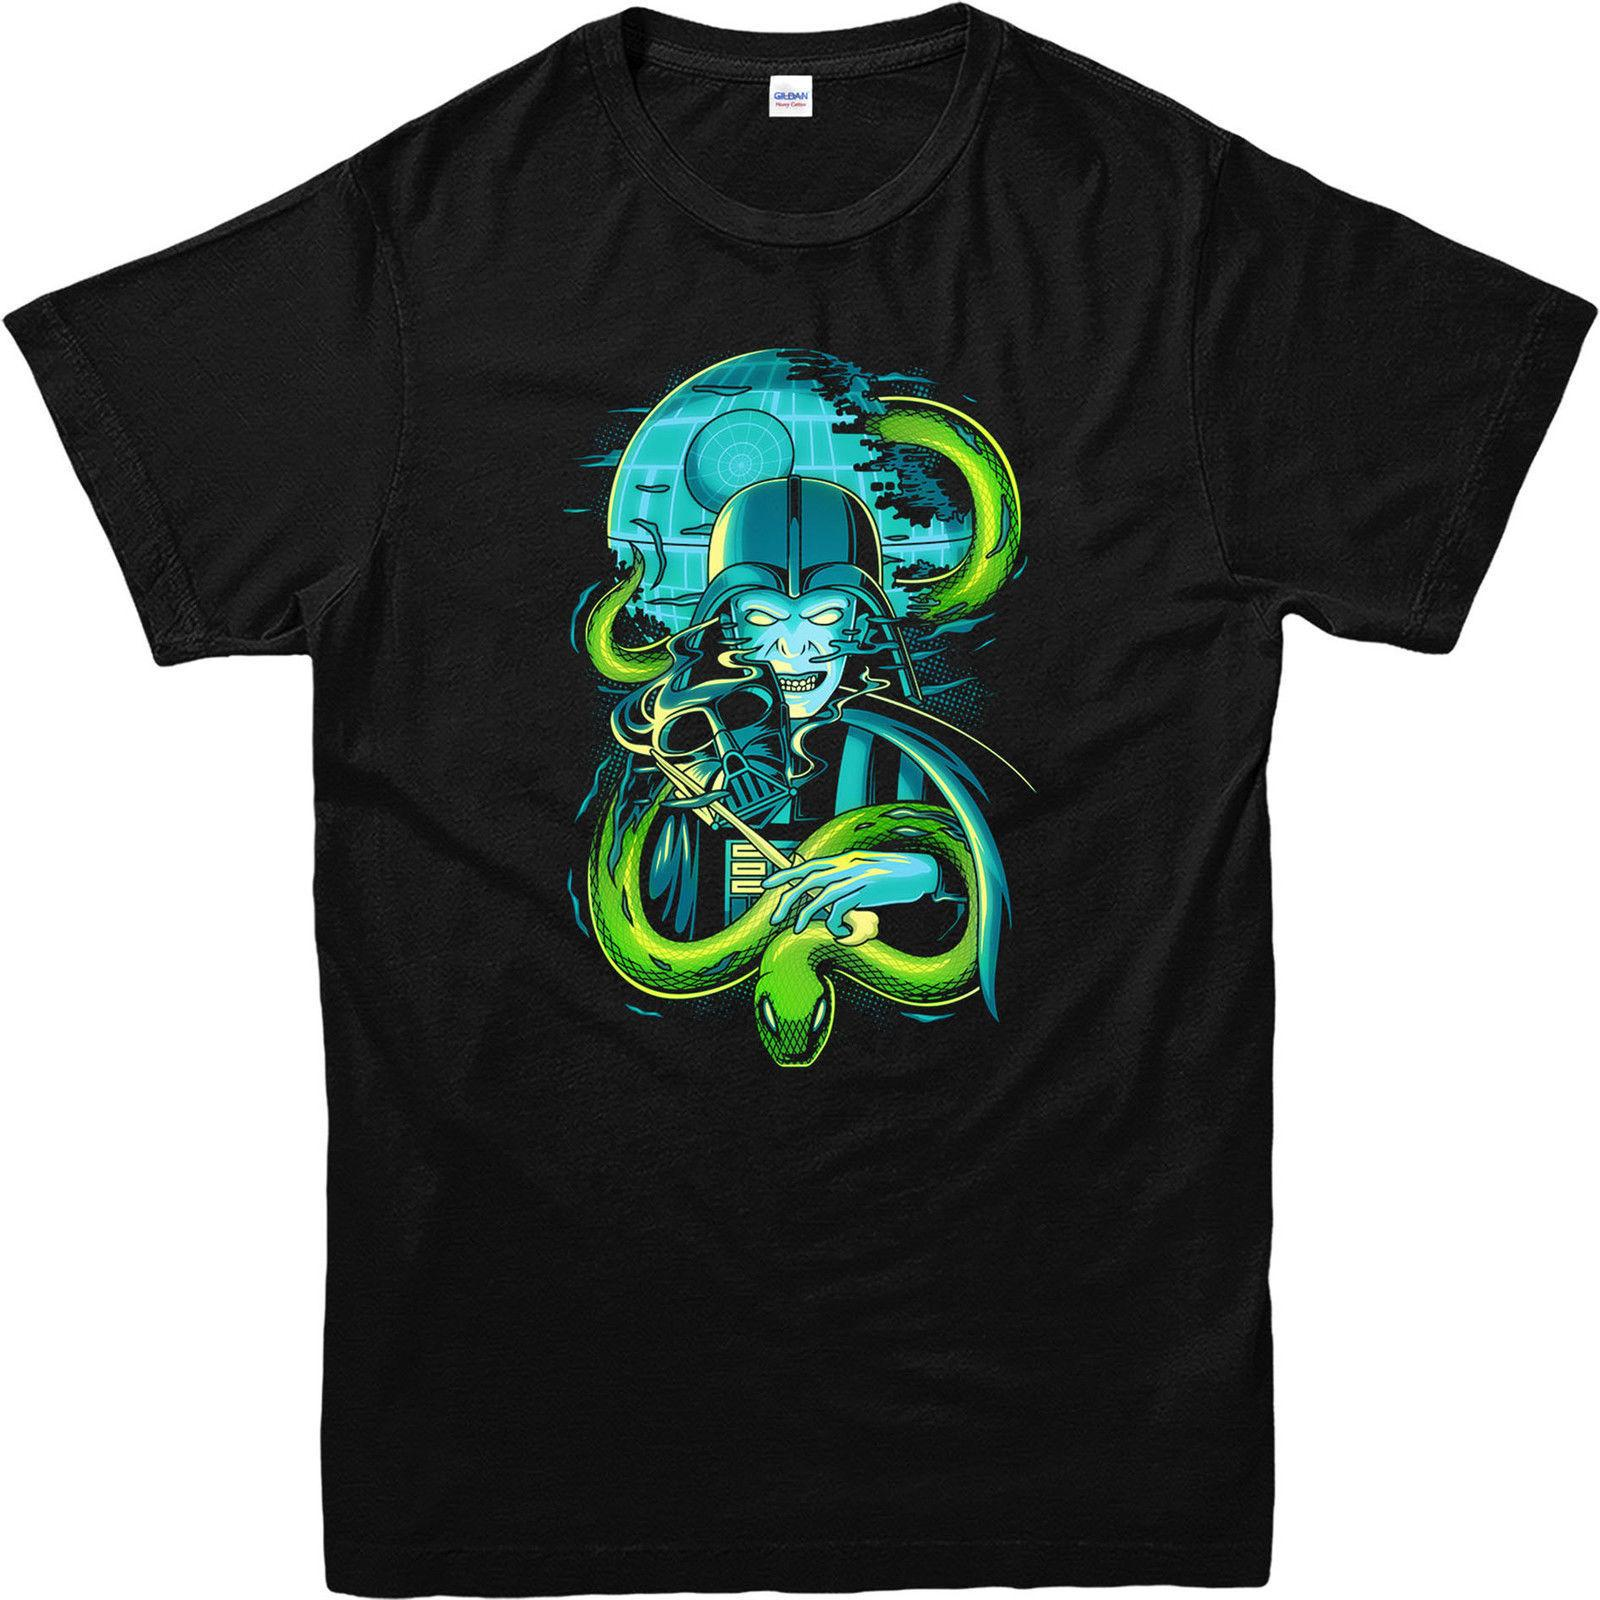 df367523 Harry Potter T Shirt,House Slytherin Snake,Adult And Kids Sizes Buy Funky T  Shirts Online Ot Shirts From Funnytees, $11.17| DHgate.Com